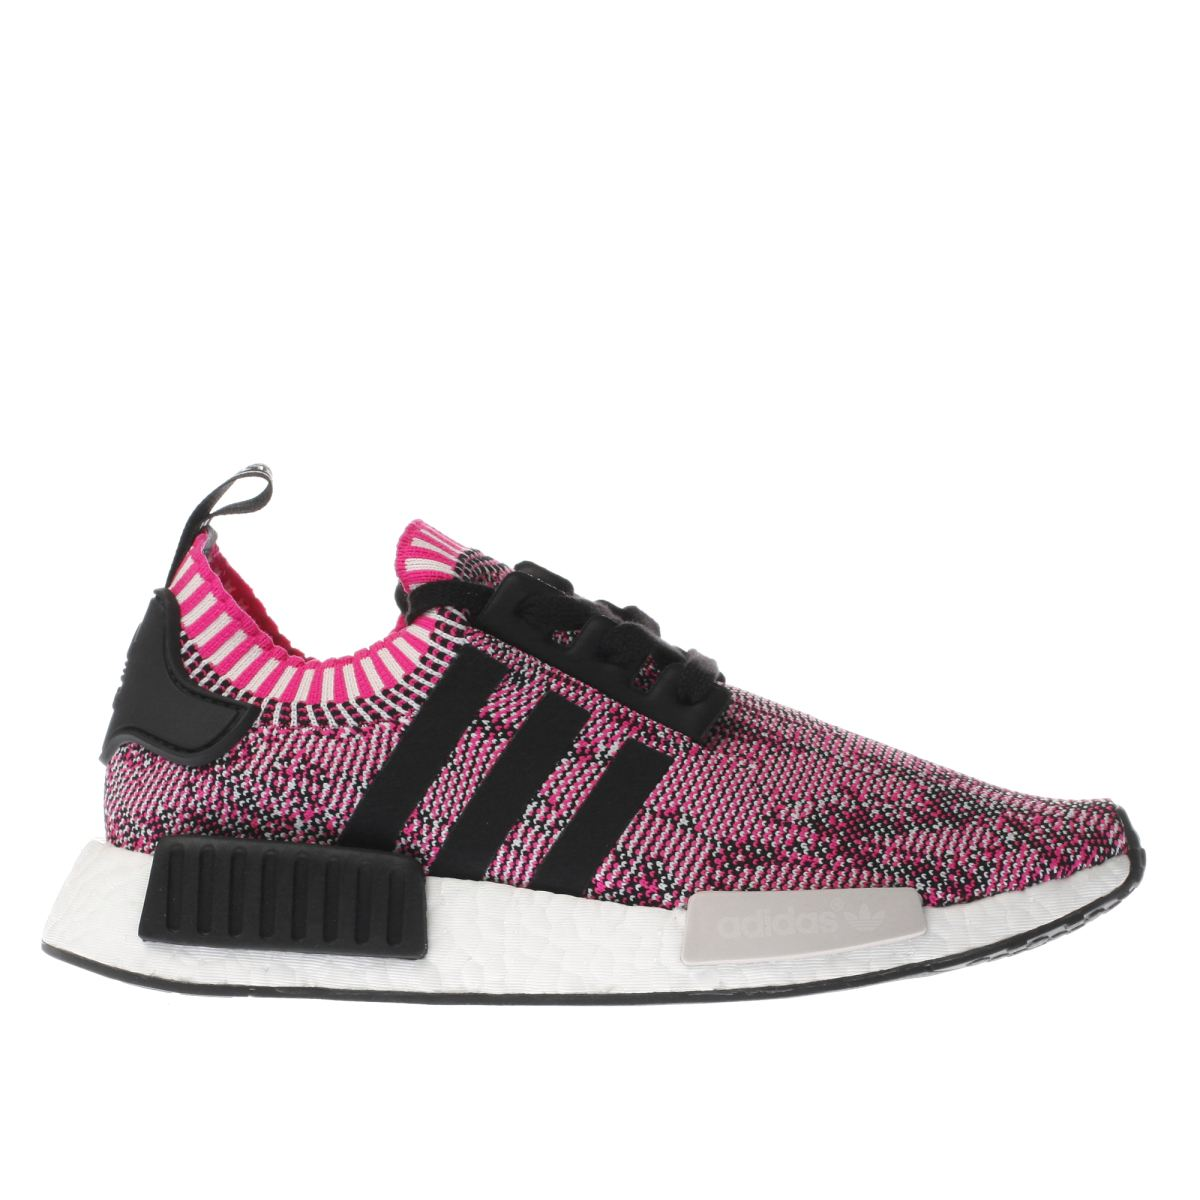 adidas pink & black nmd_r1 trainers